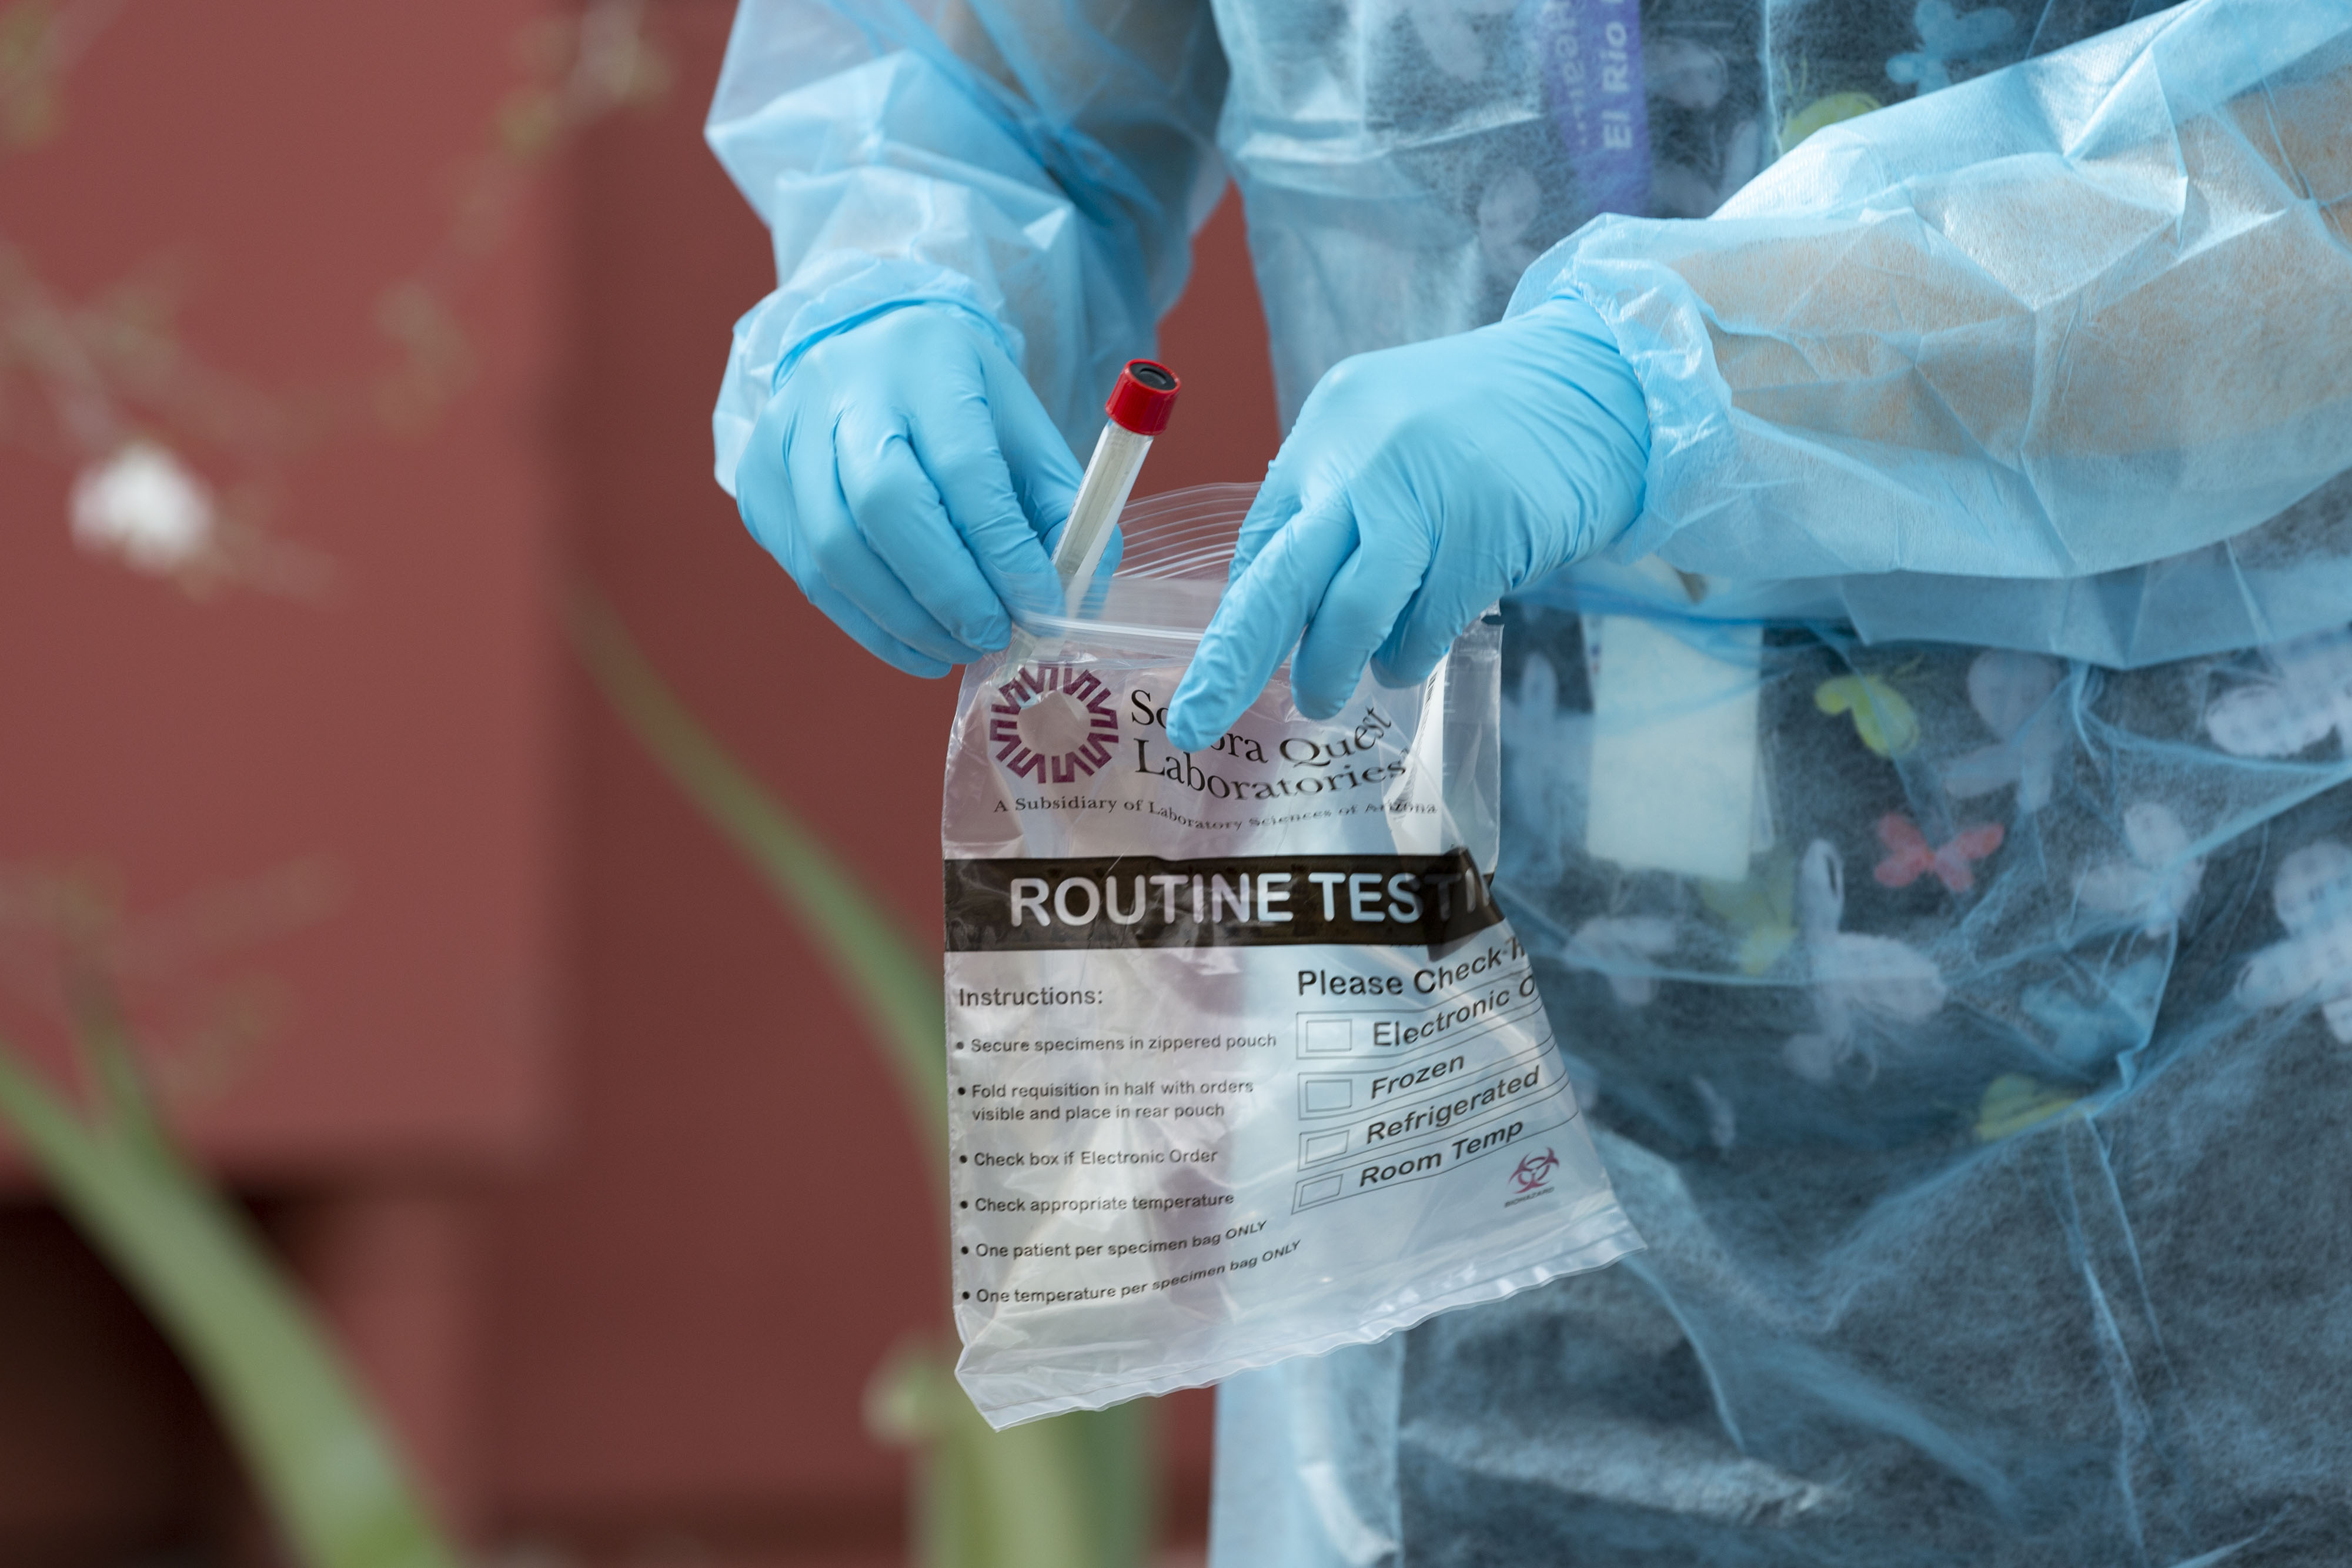 A health care worker bags a nasal swab at a Covid-19 testing site in Tucson, Arizona, on July 13.